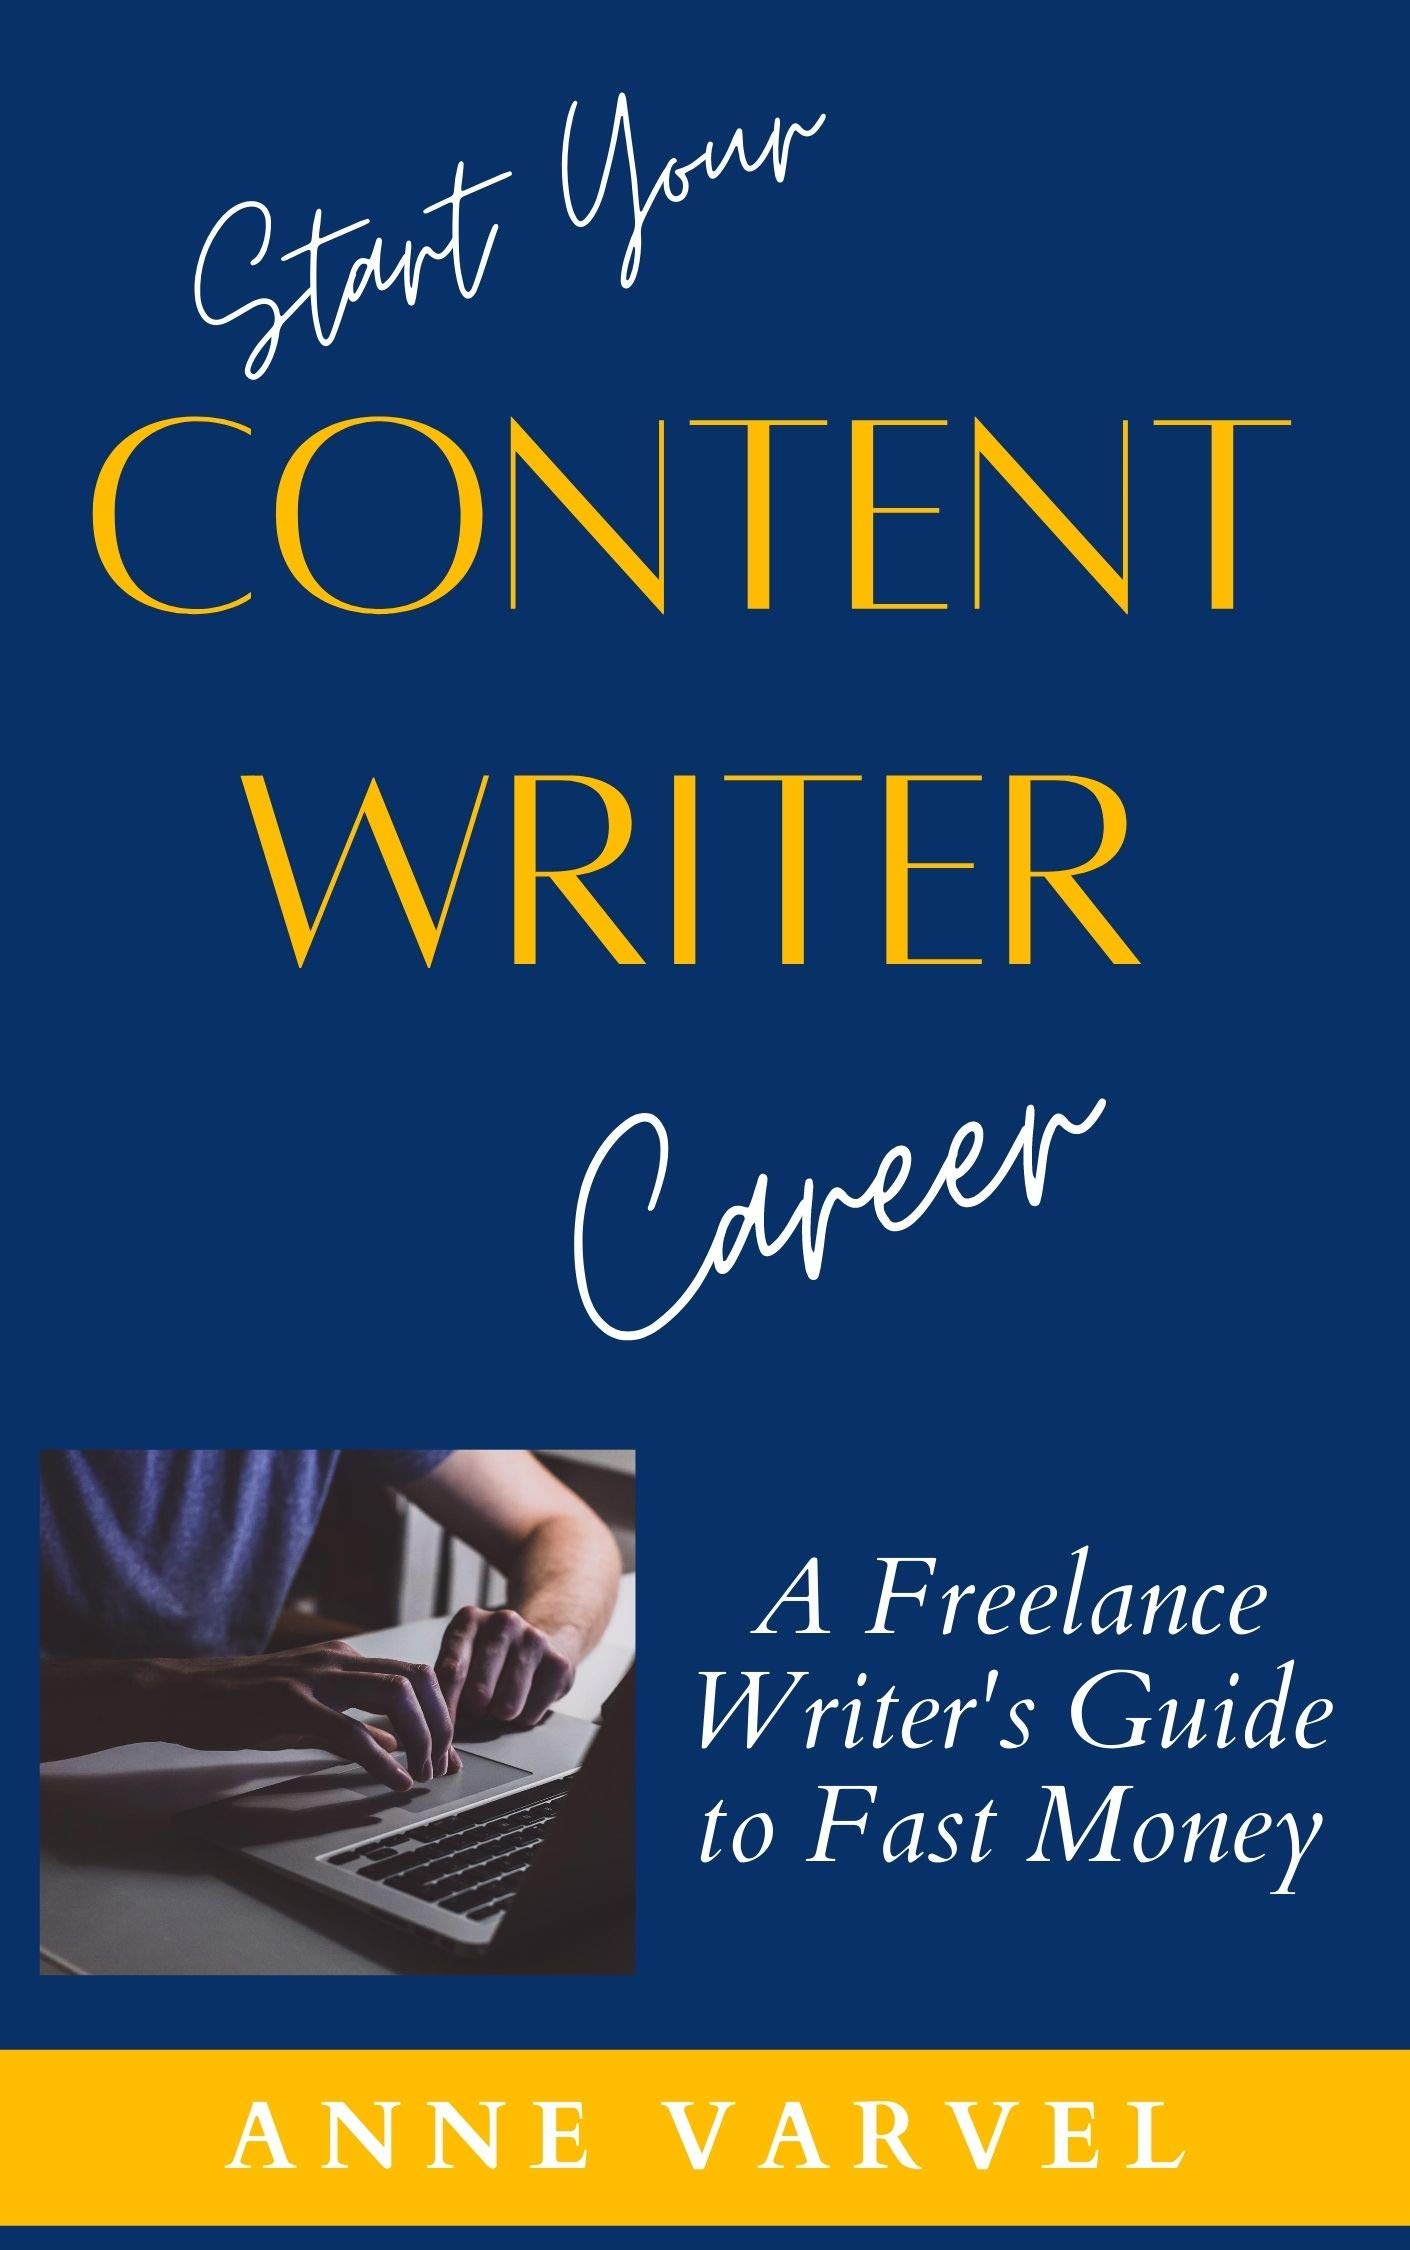 Start Your Content Writer Career: A Freelance Writer's Guide to Fast Money